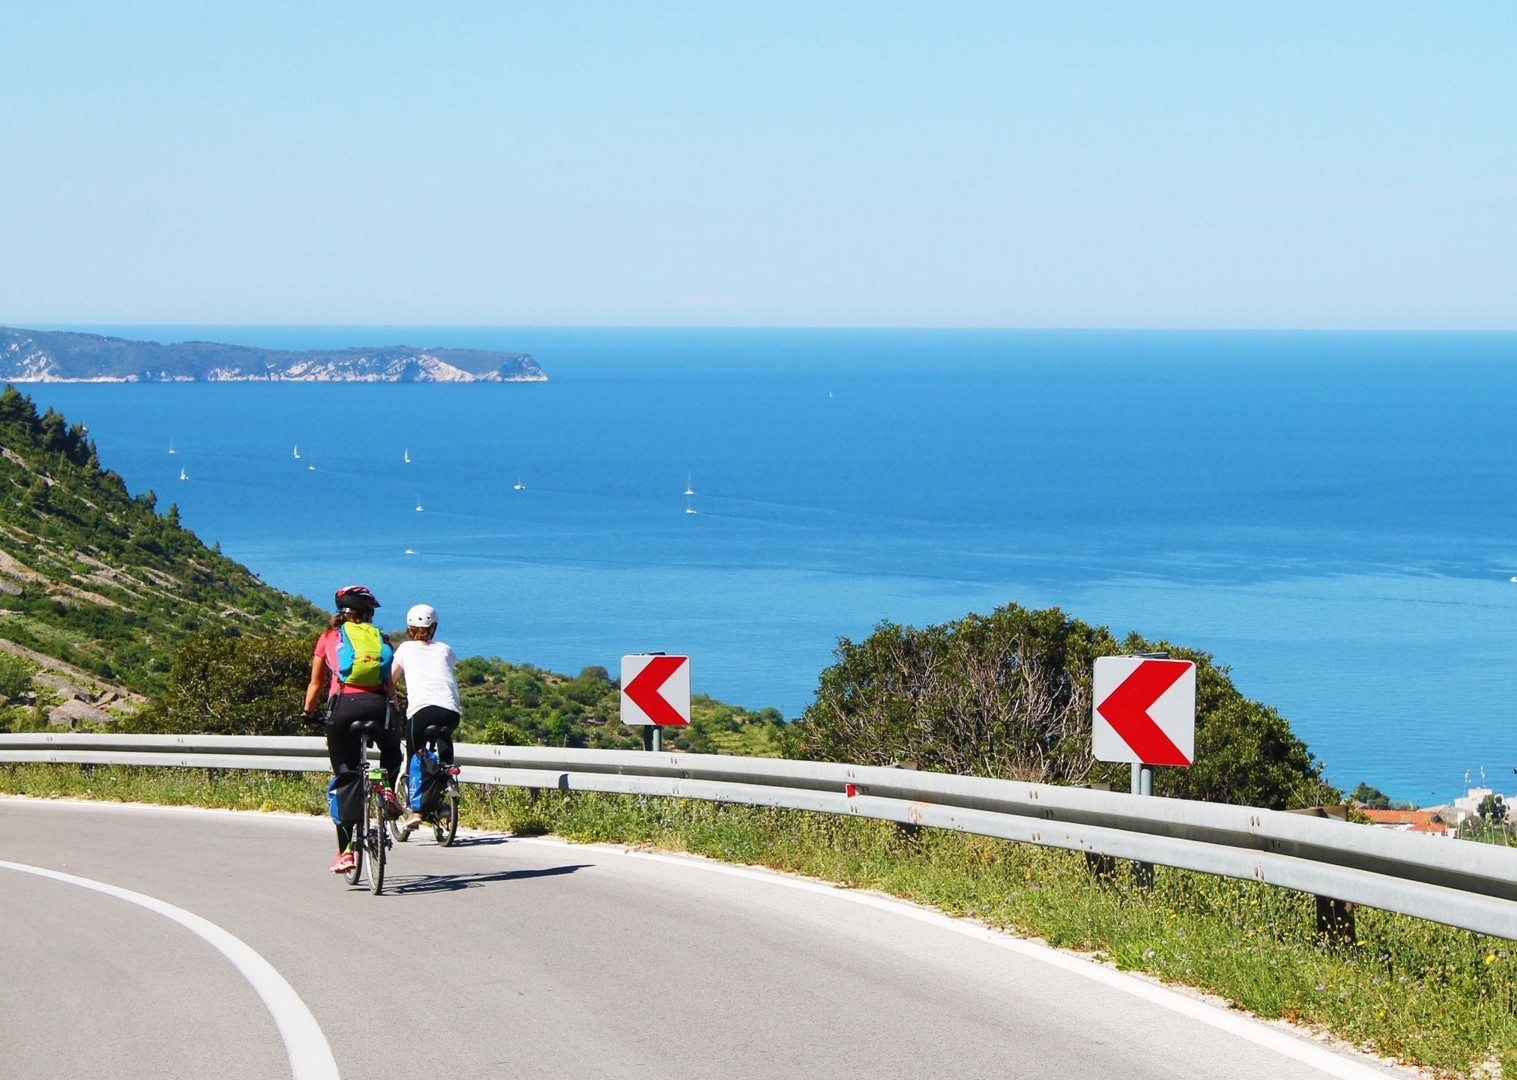 croatian-coast-explore-on-bike-skedaddle.jpg - Croatia - Dalmatian National Parks and Islands Plus - Bike and Boat Holiday - Leisure Cycling